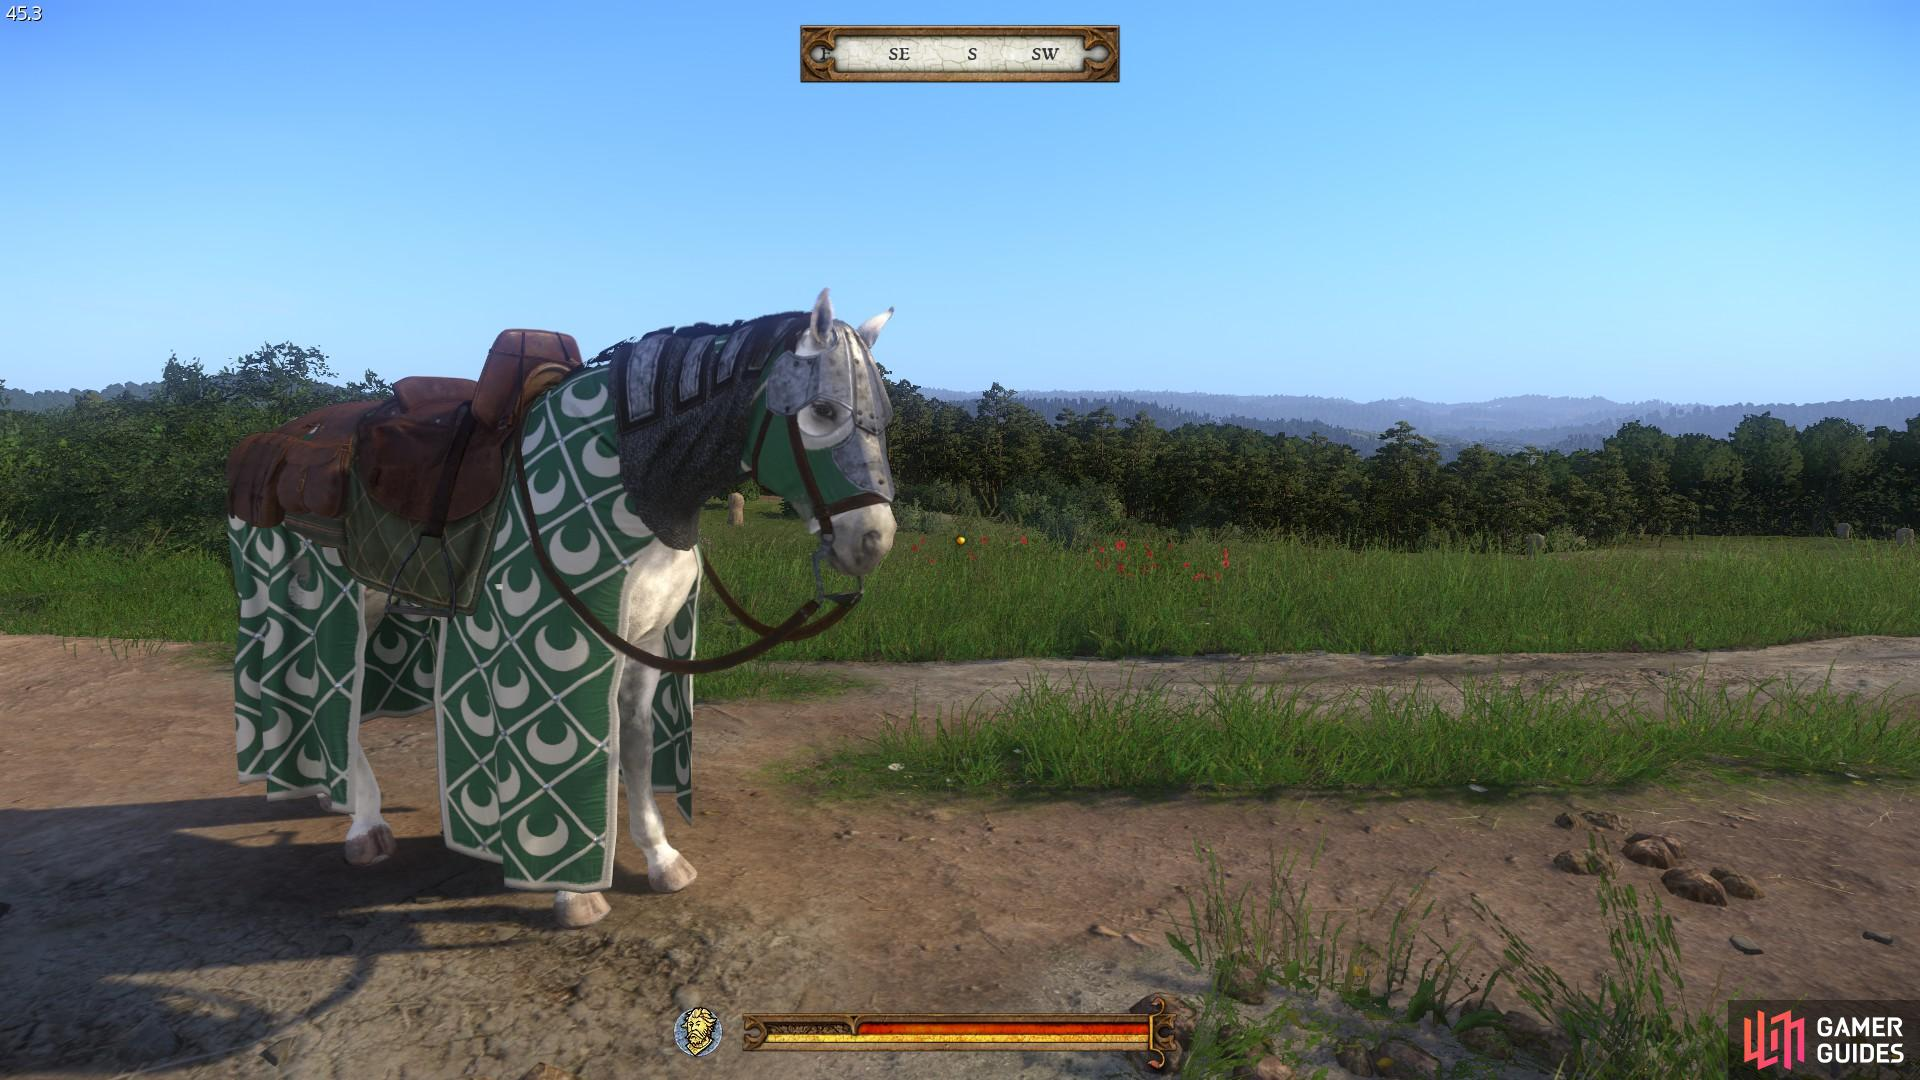 Horse head armour found east of Ledetchko.